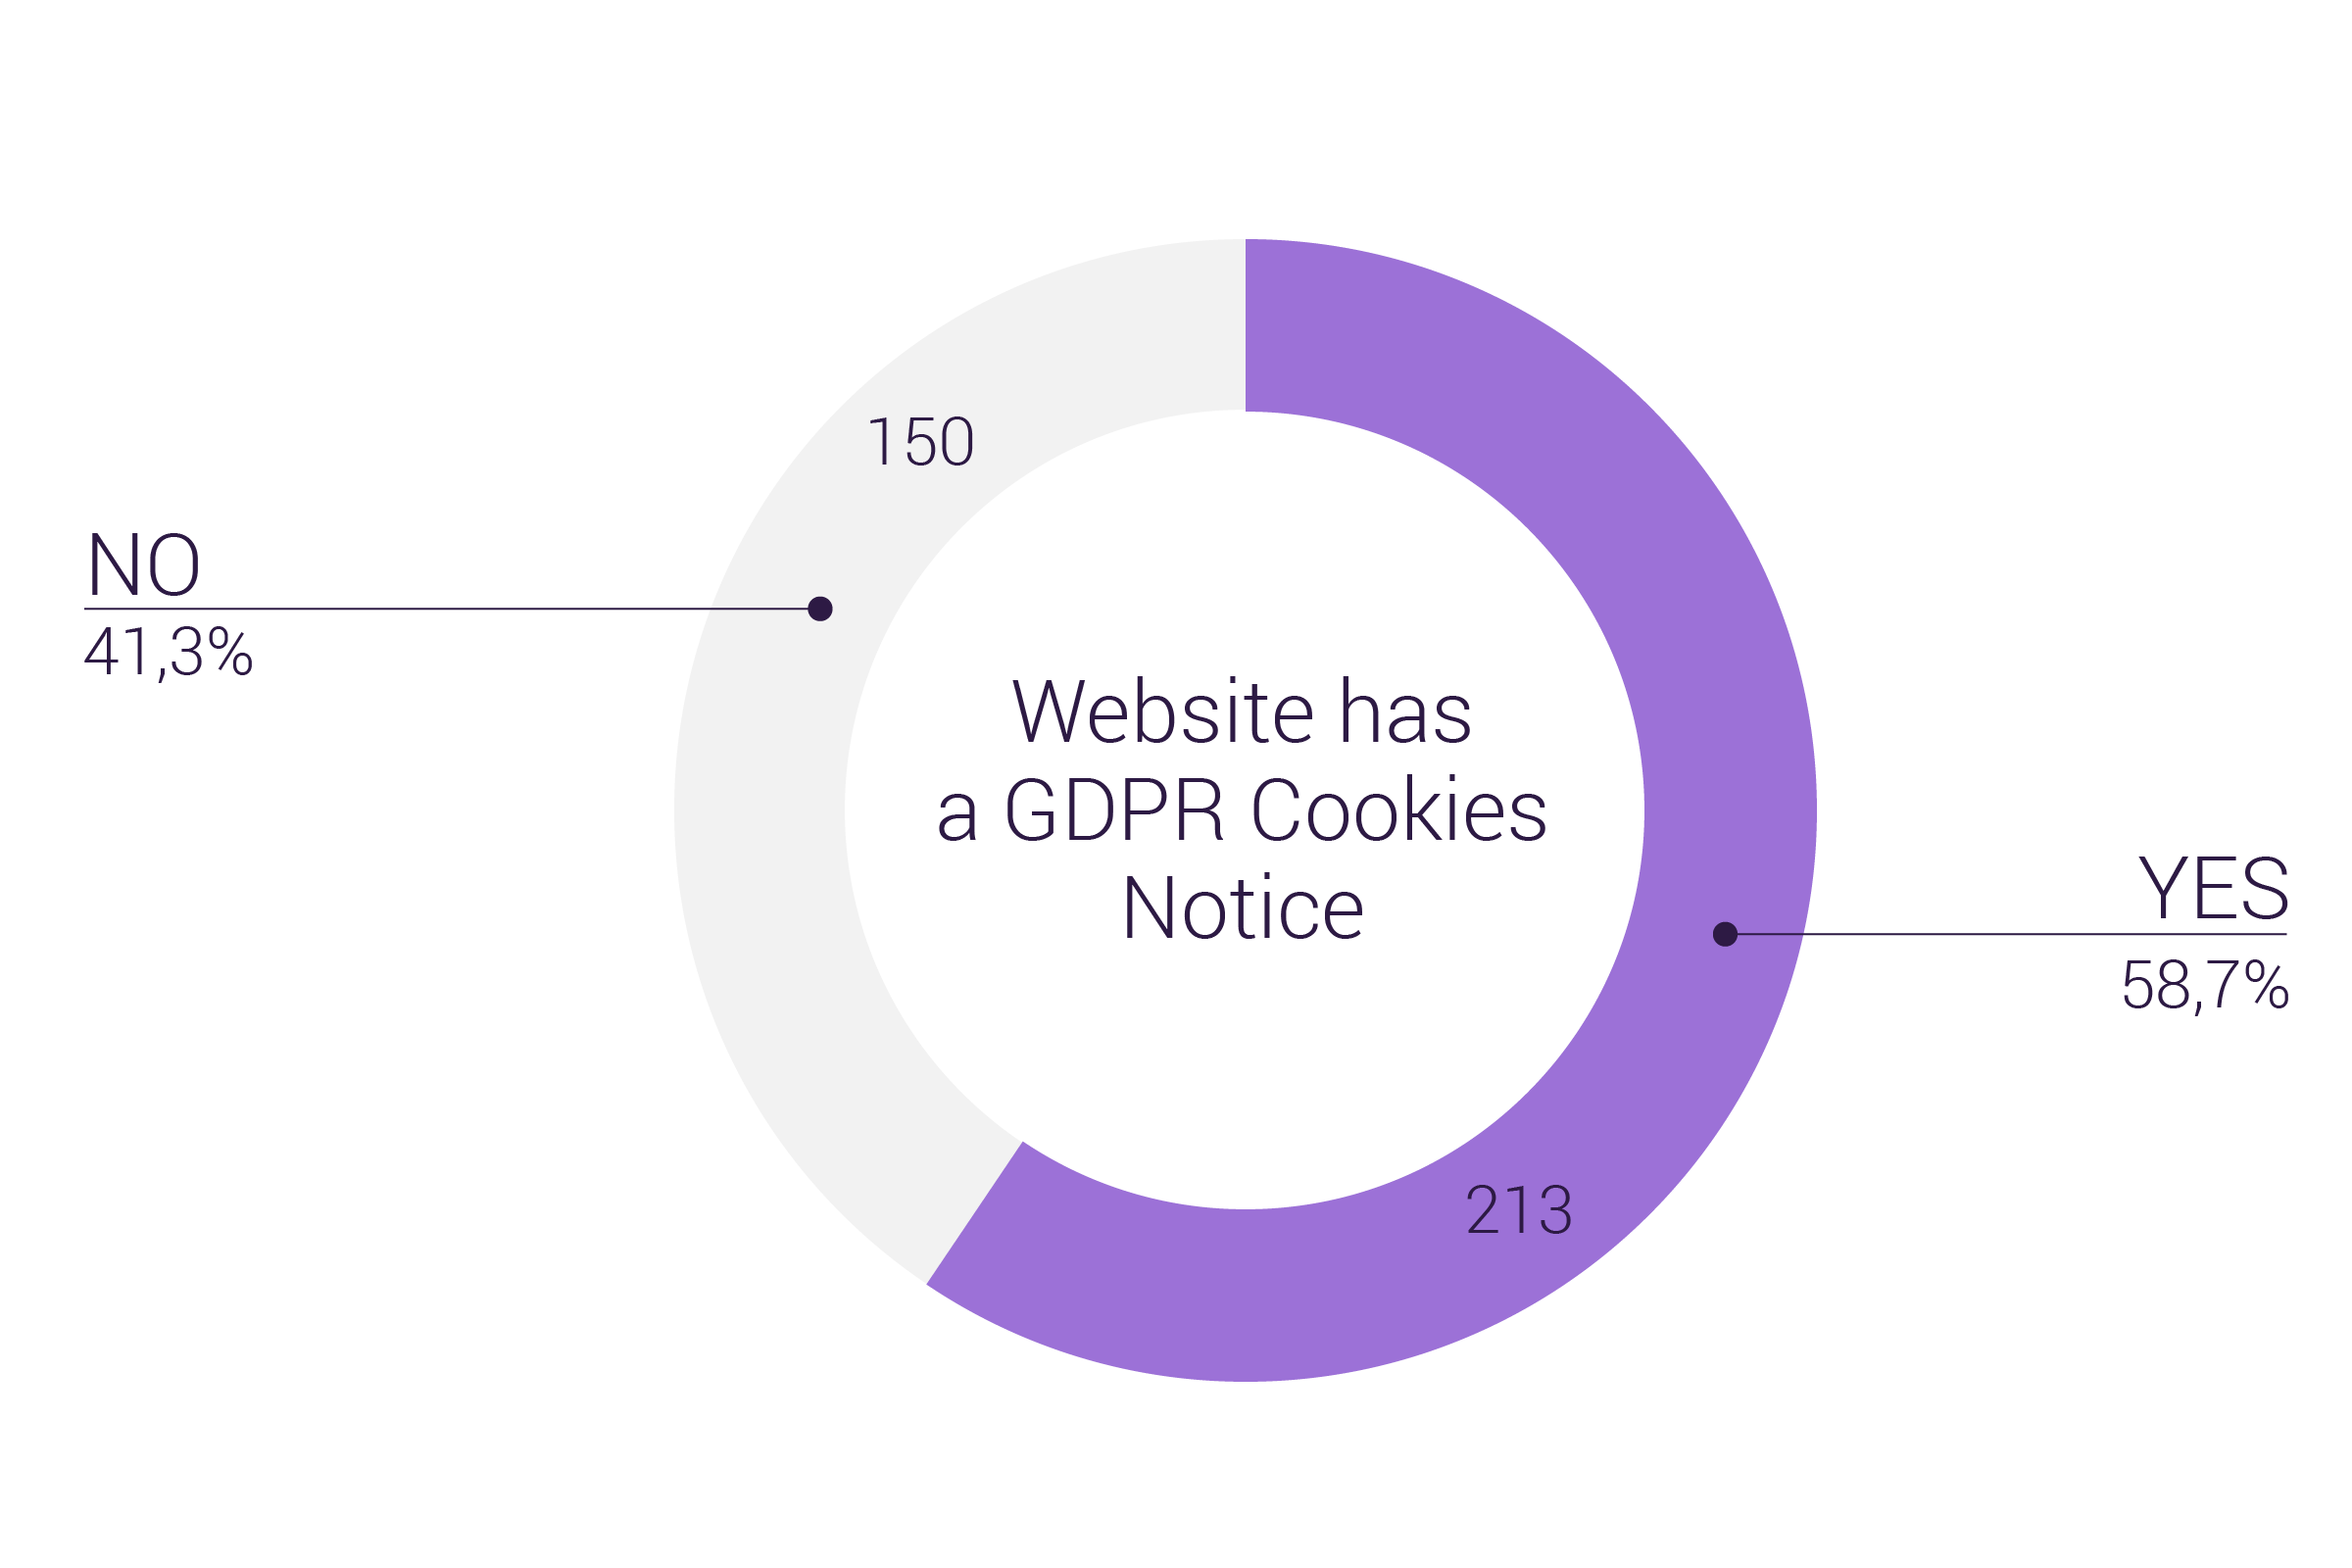 How many NASDAQ First North Growth Market Companies have a GDPR Cookies Notice on their front page - Customer Experience Trends Report from GetJenny